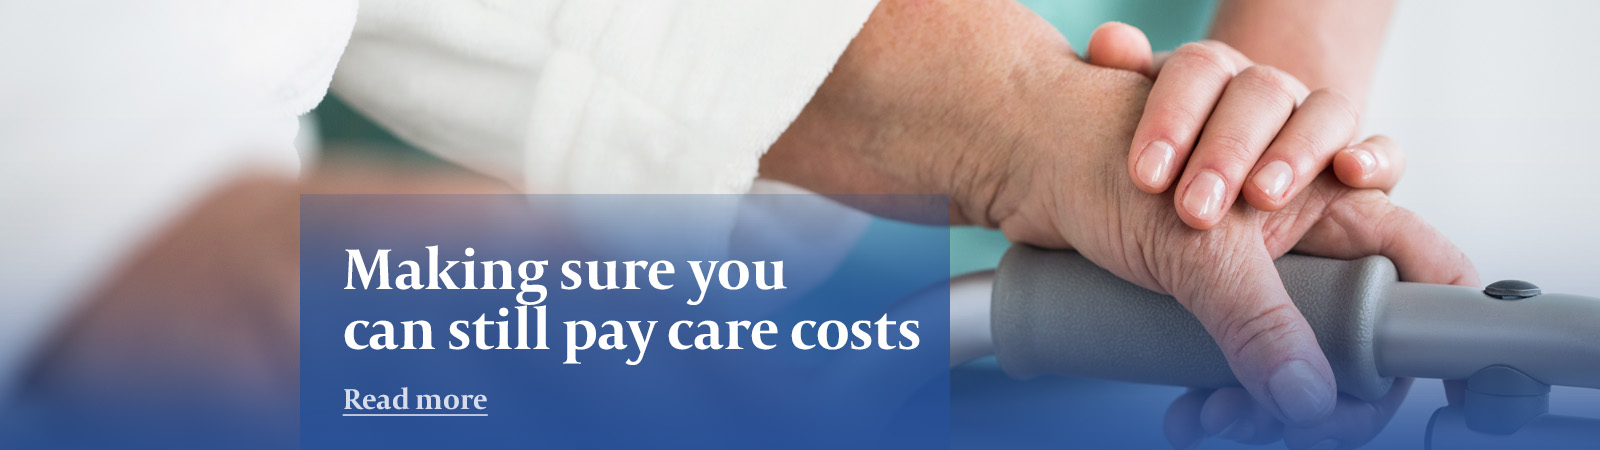 Making sure you can still pay care costs banner image